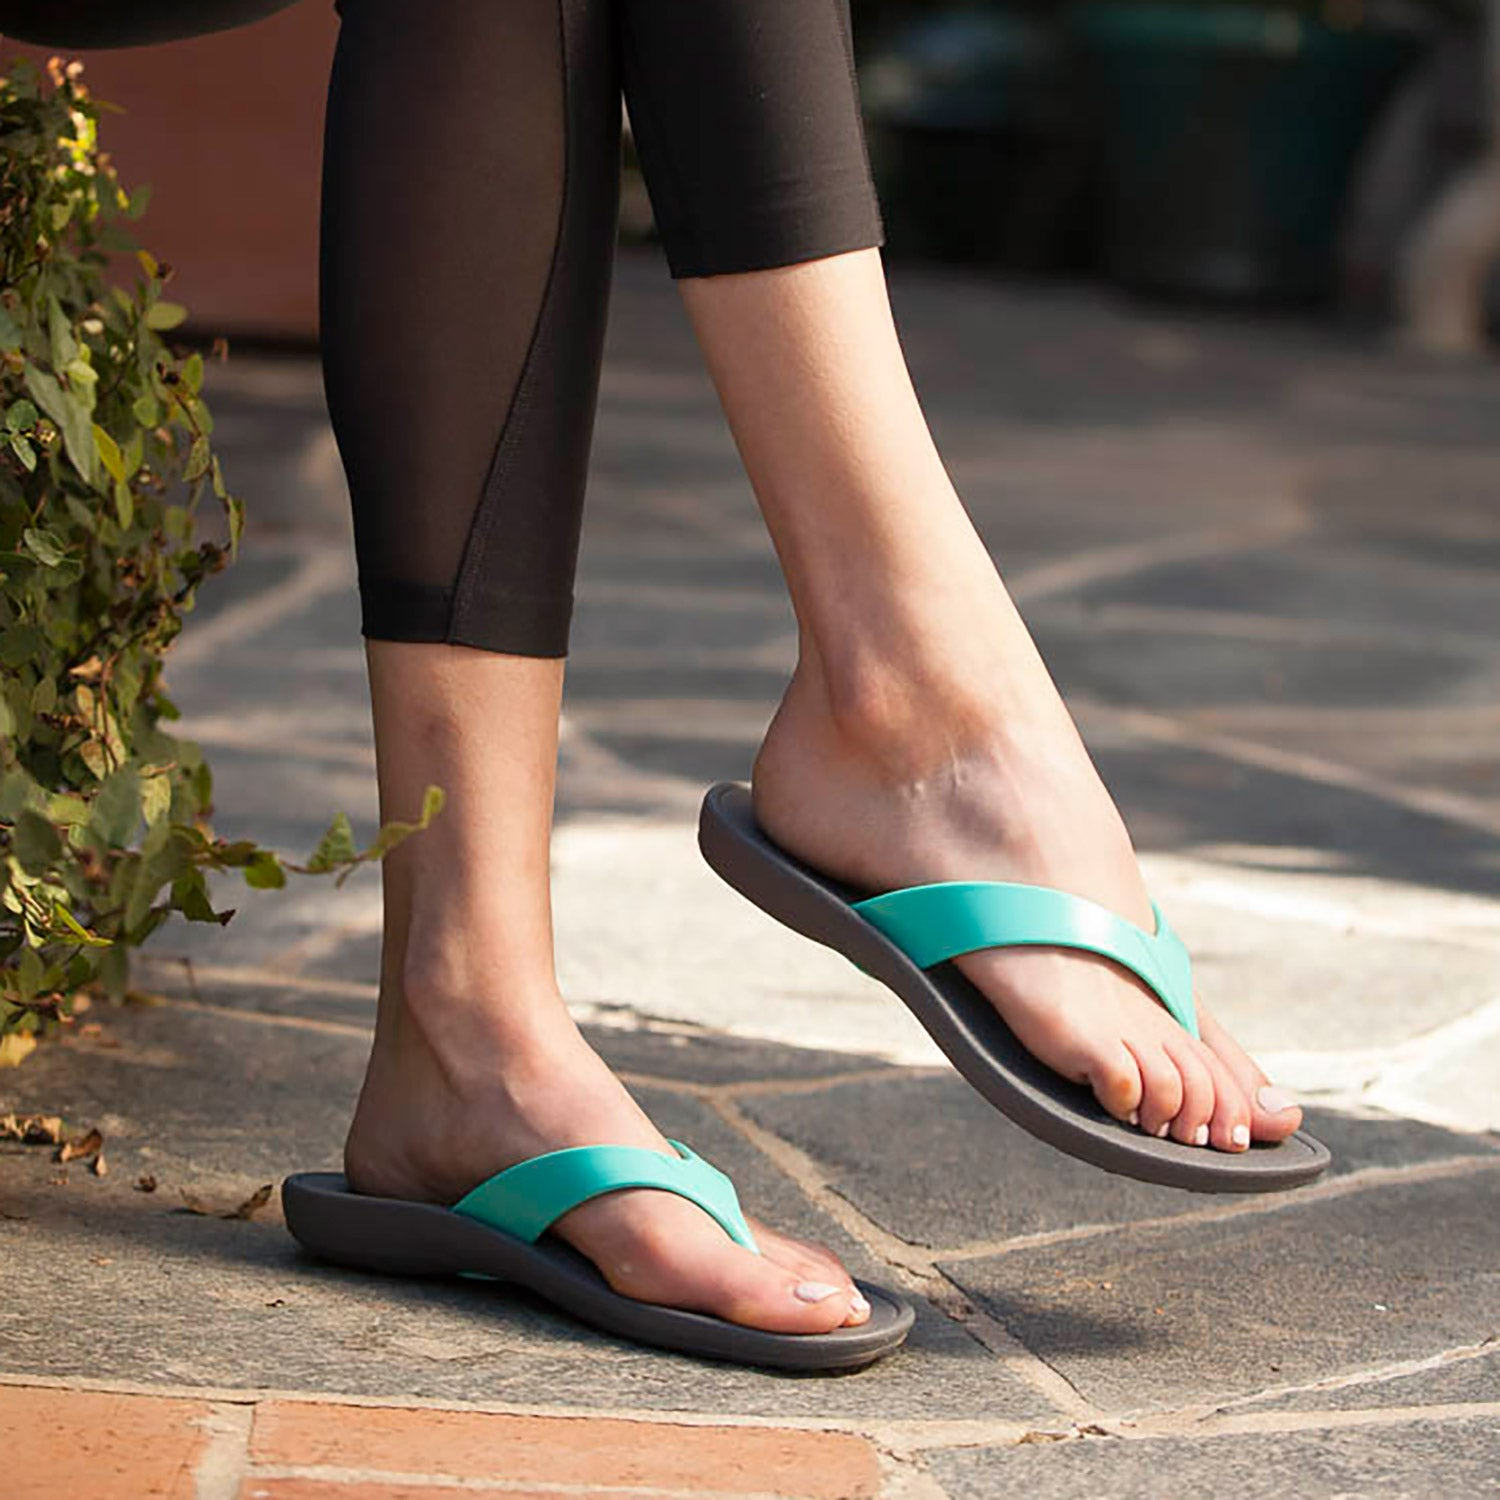 Womens Flip Flops, Sandals, And Clogs - Okabashi Shoes-5386